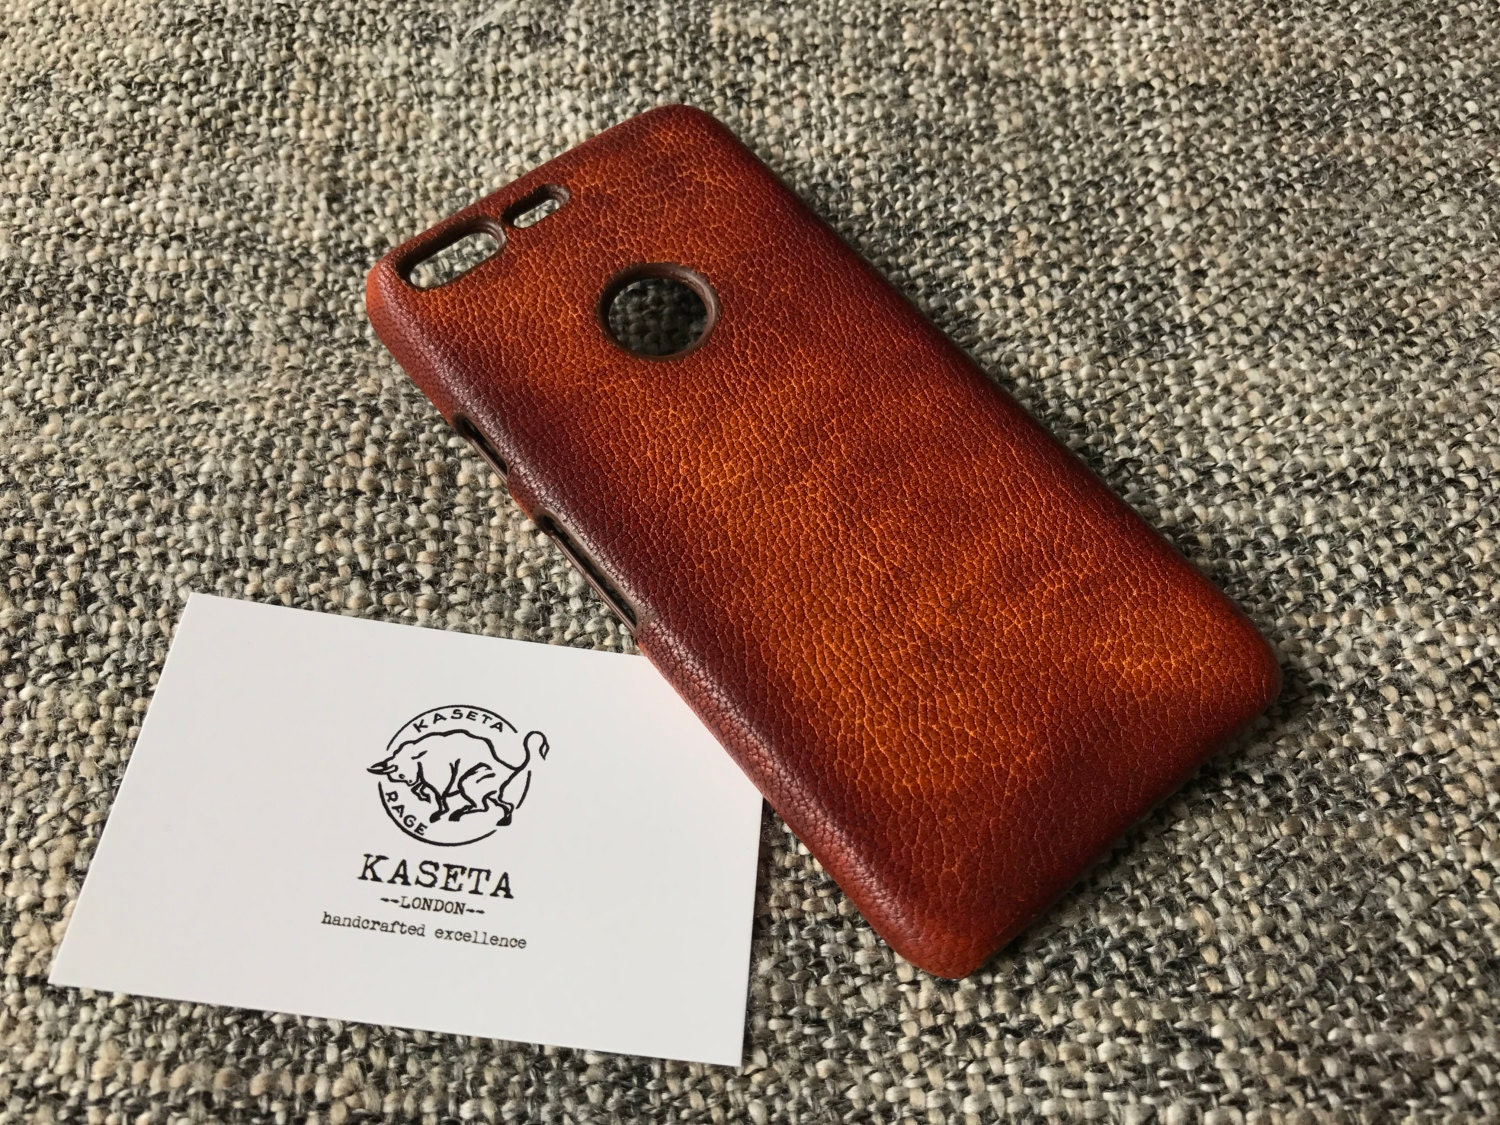 Pixel 2 Leather Case, Pixel 2 XL, Google Pixel Leather Case, Pixel Case, Pixel xl case Old DarkBrown Kaseta